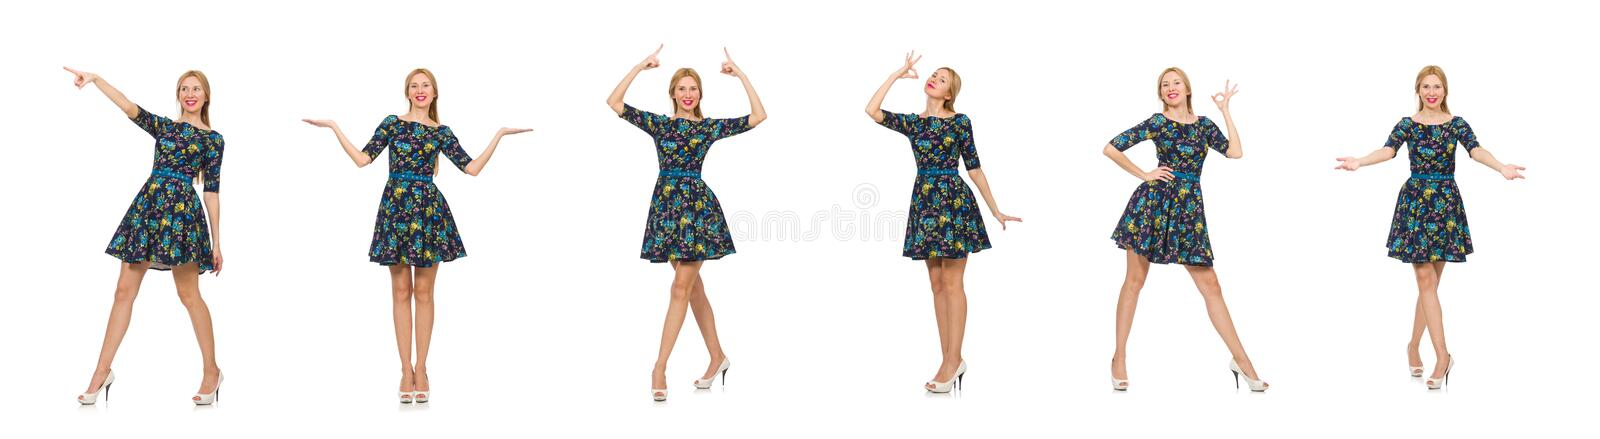 Woman in dark blue floral dress isolated on white royalty free stock images